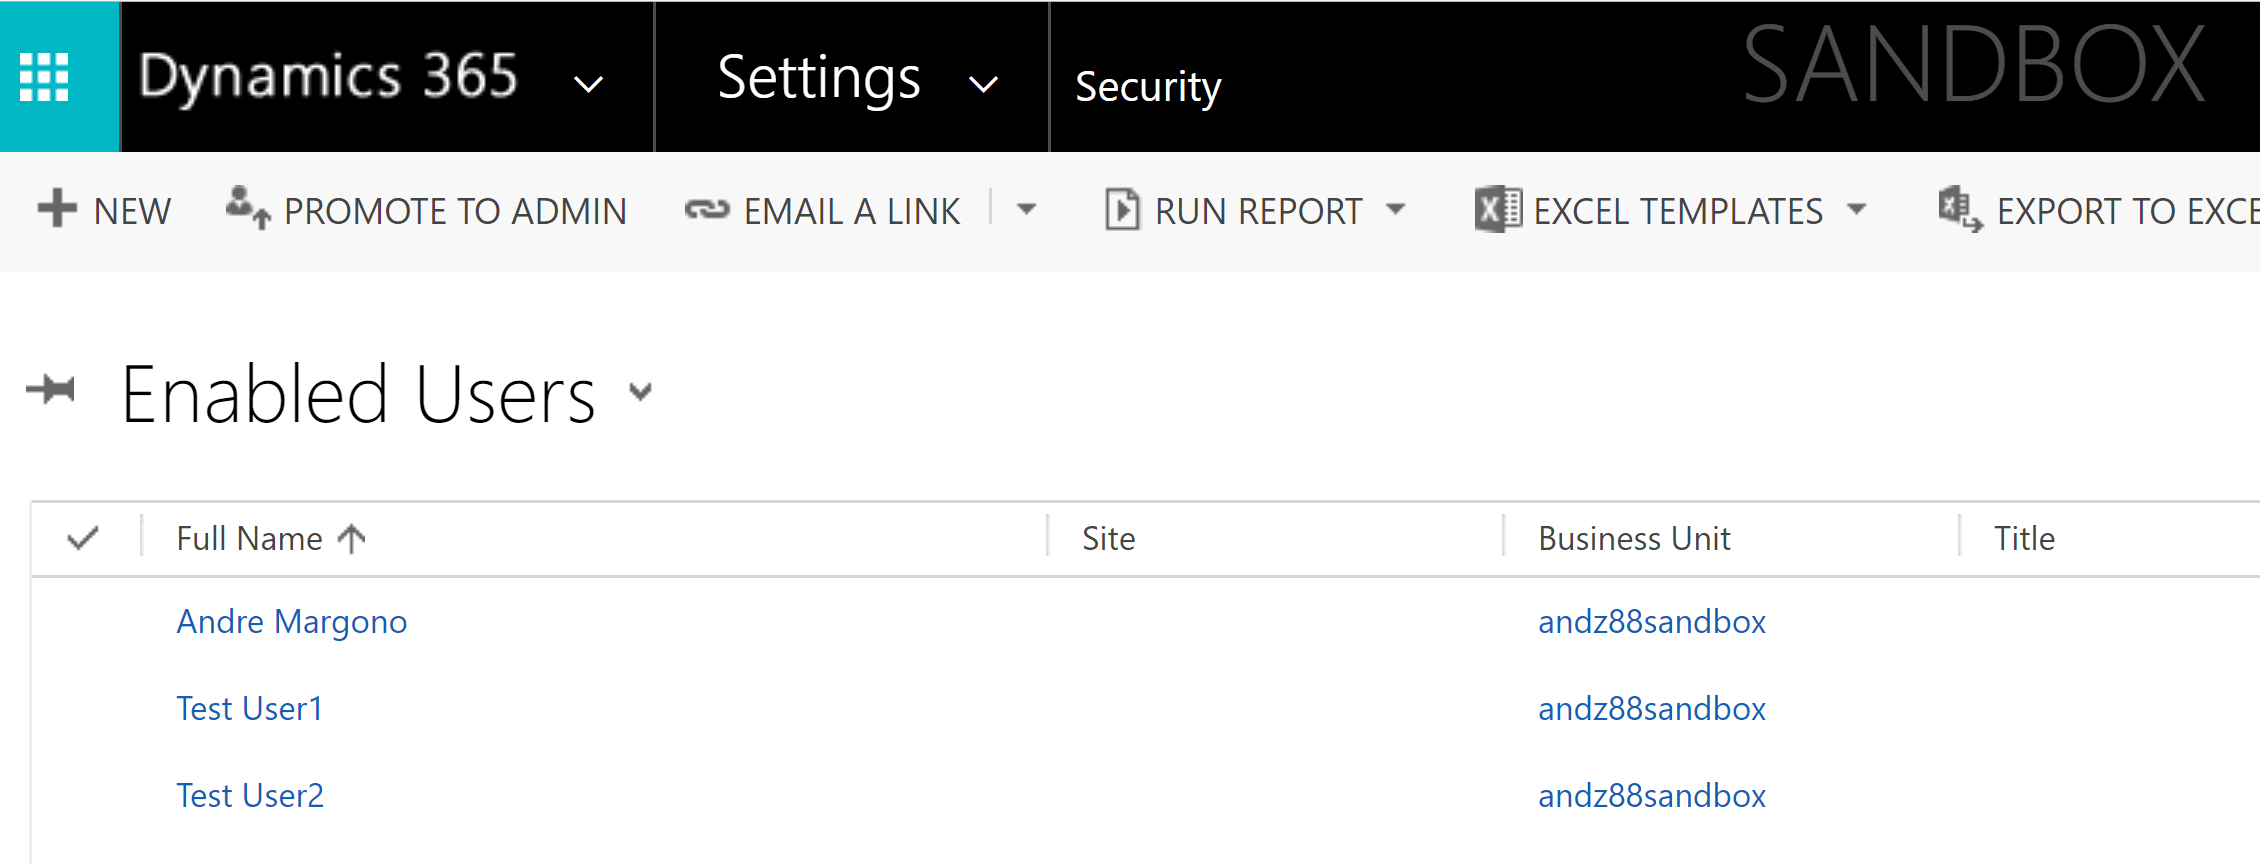 Dynamics 365 Online Deployment Tips: Set Your Security